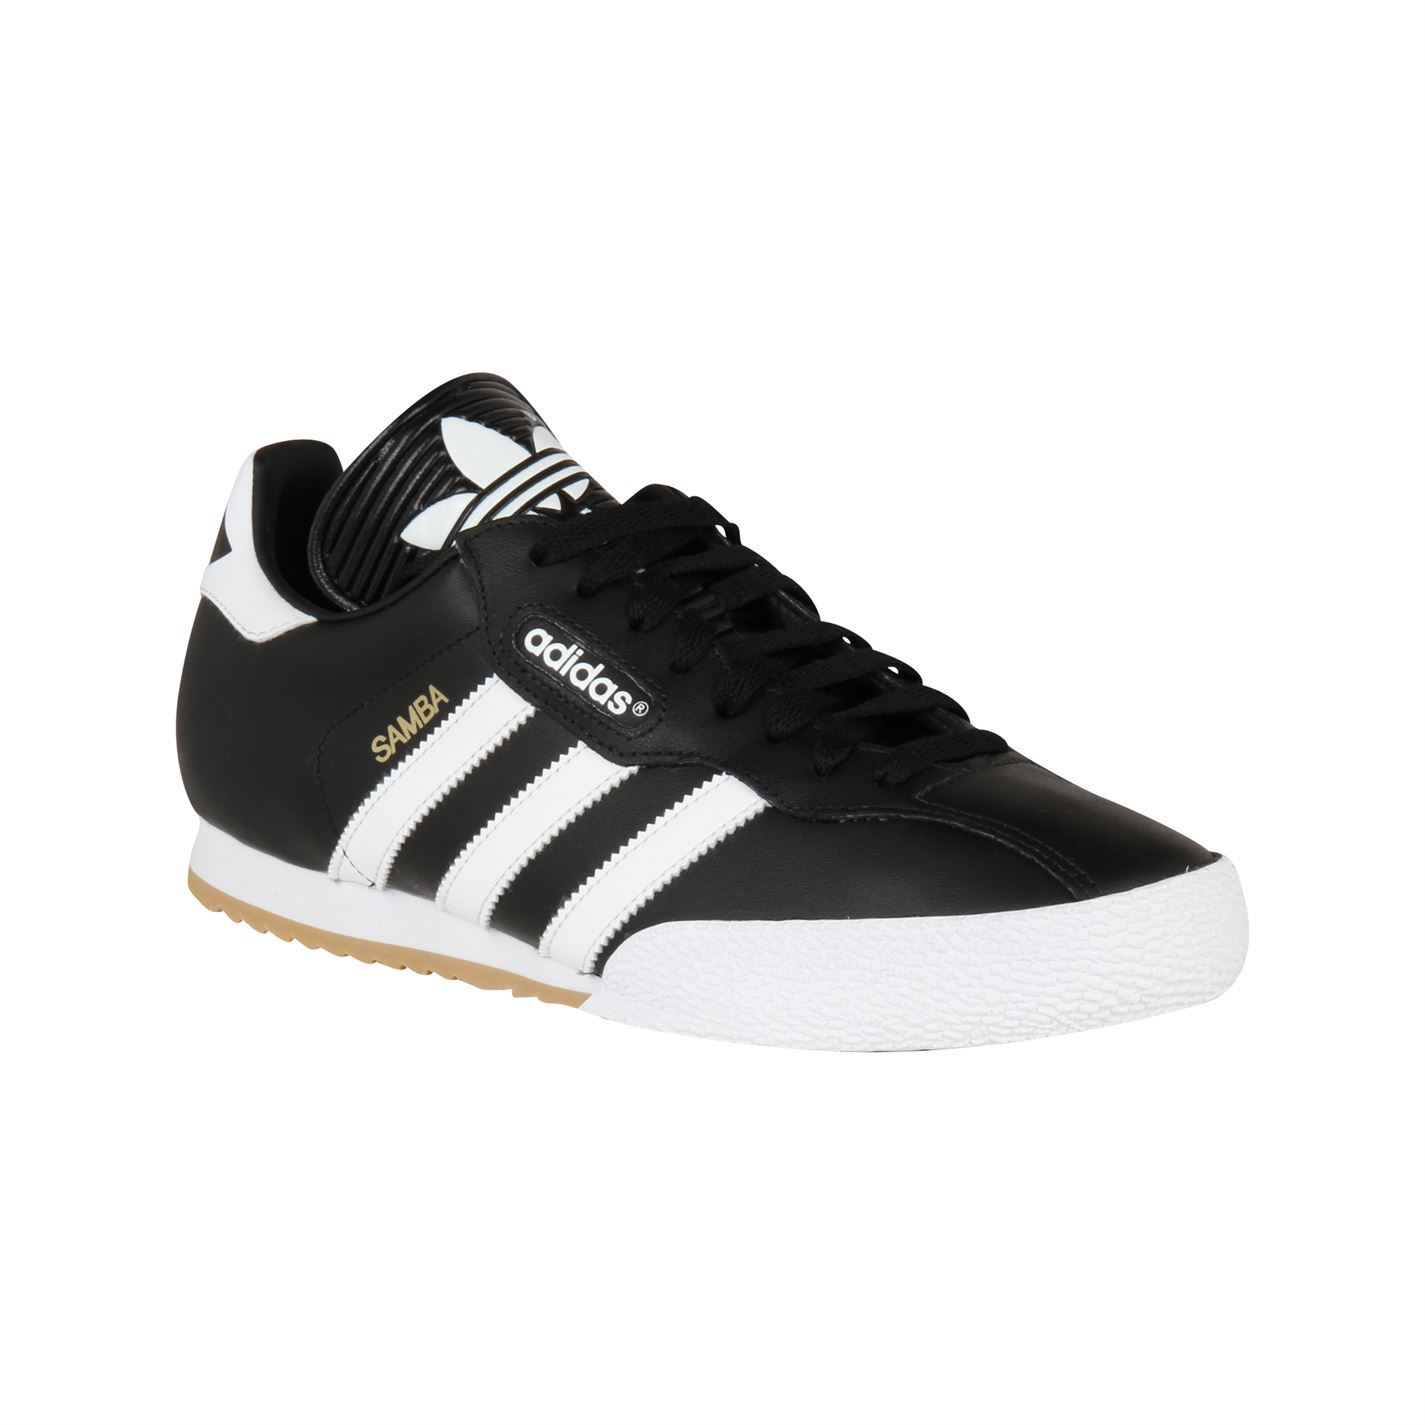 Adidas Samba Super Shoes Trainers Sneakers Sports Footwear Black/White